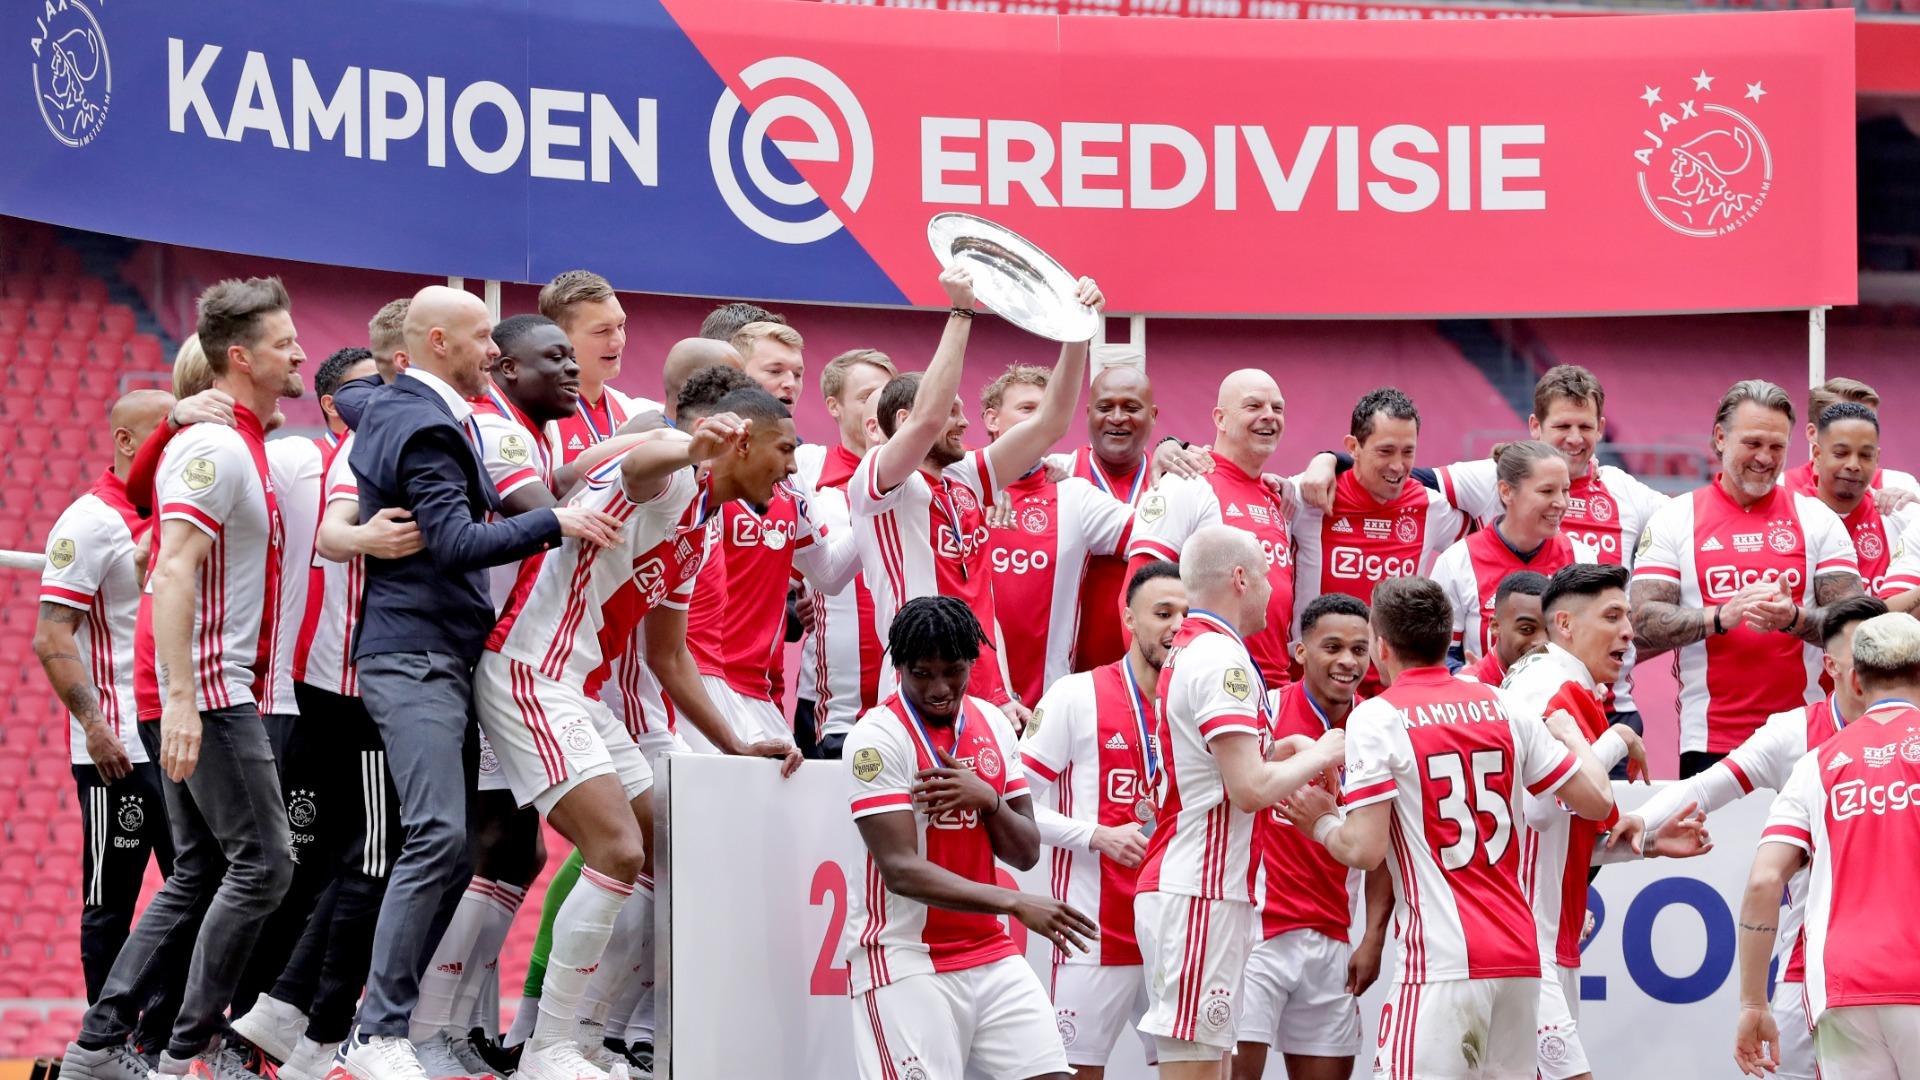 Ajax clinched their 35th league title earlier this month and decided to melt the trophy in a show of gratitude to their supporters.